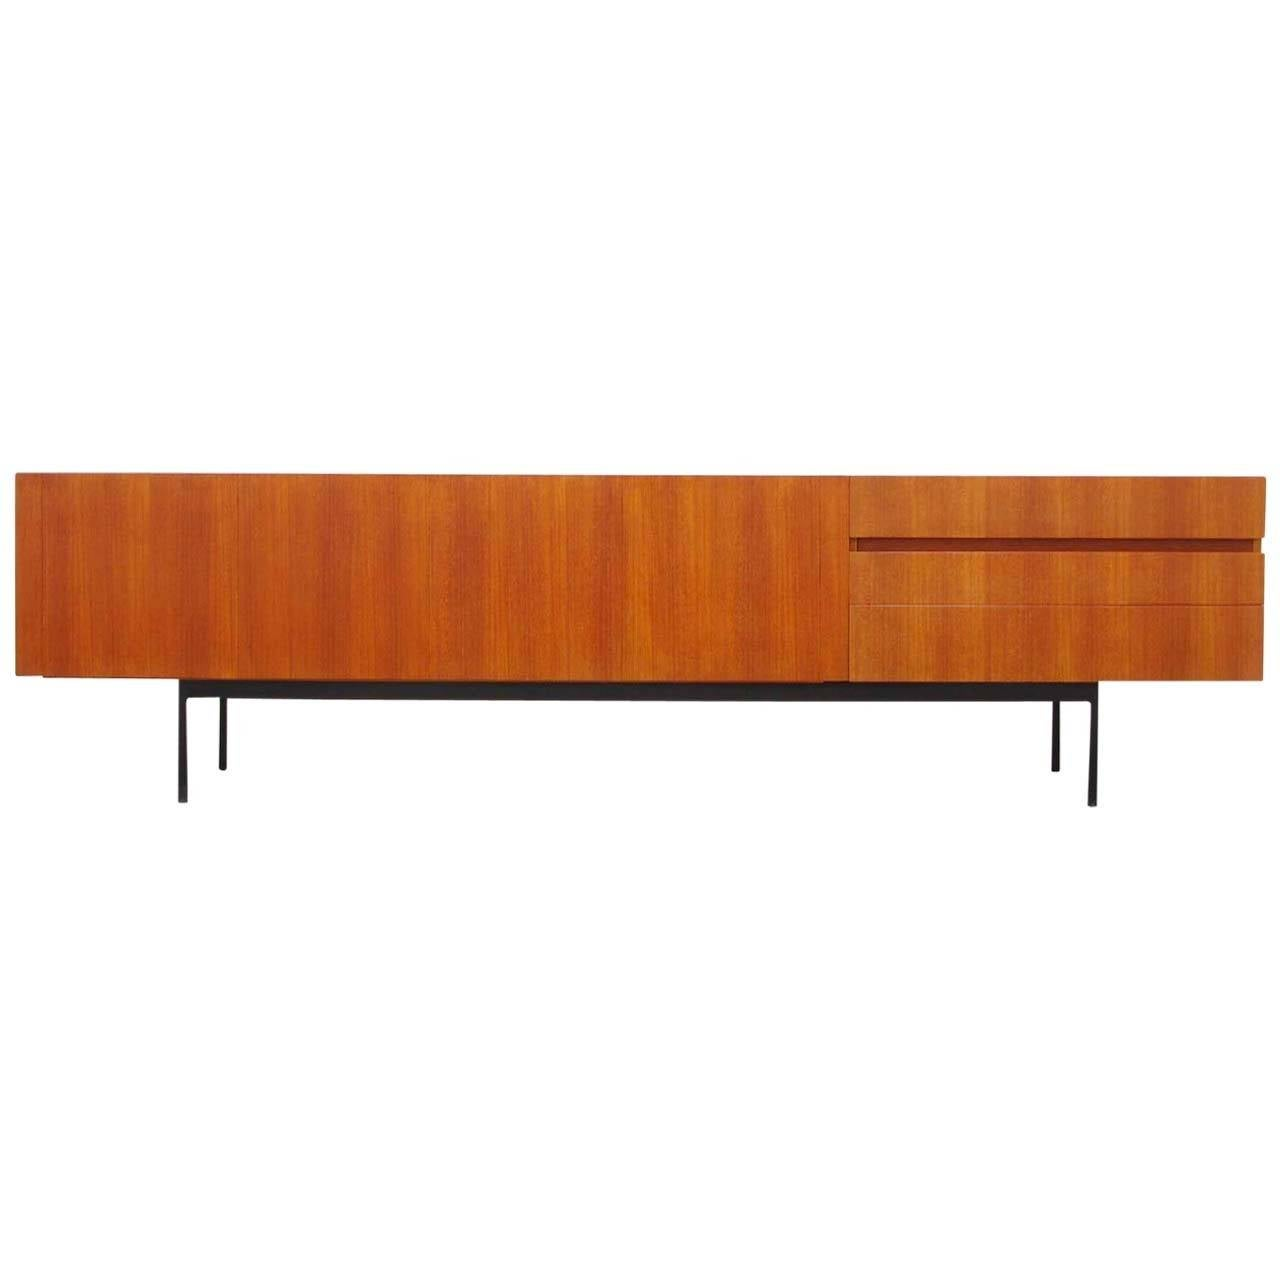 teak sideboard b41 by dieter waeckerlin for behr mid century modern design at 1stdibs. Black Bedroom Furniture Sets. Home Design Ideas